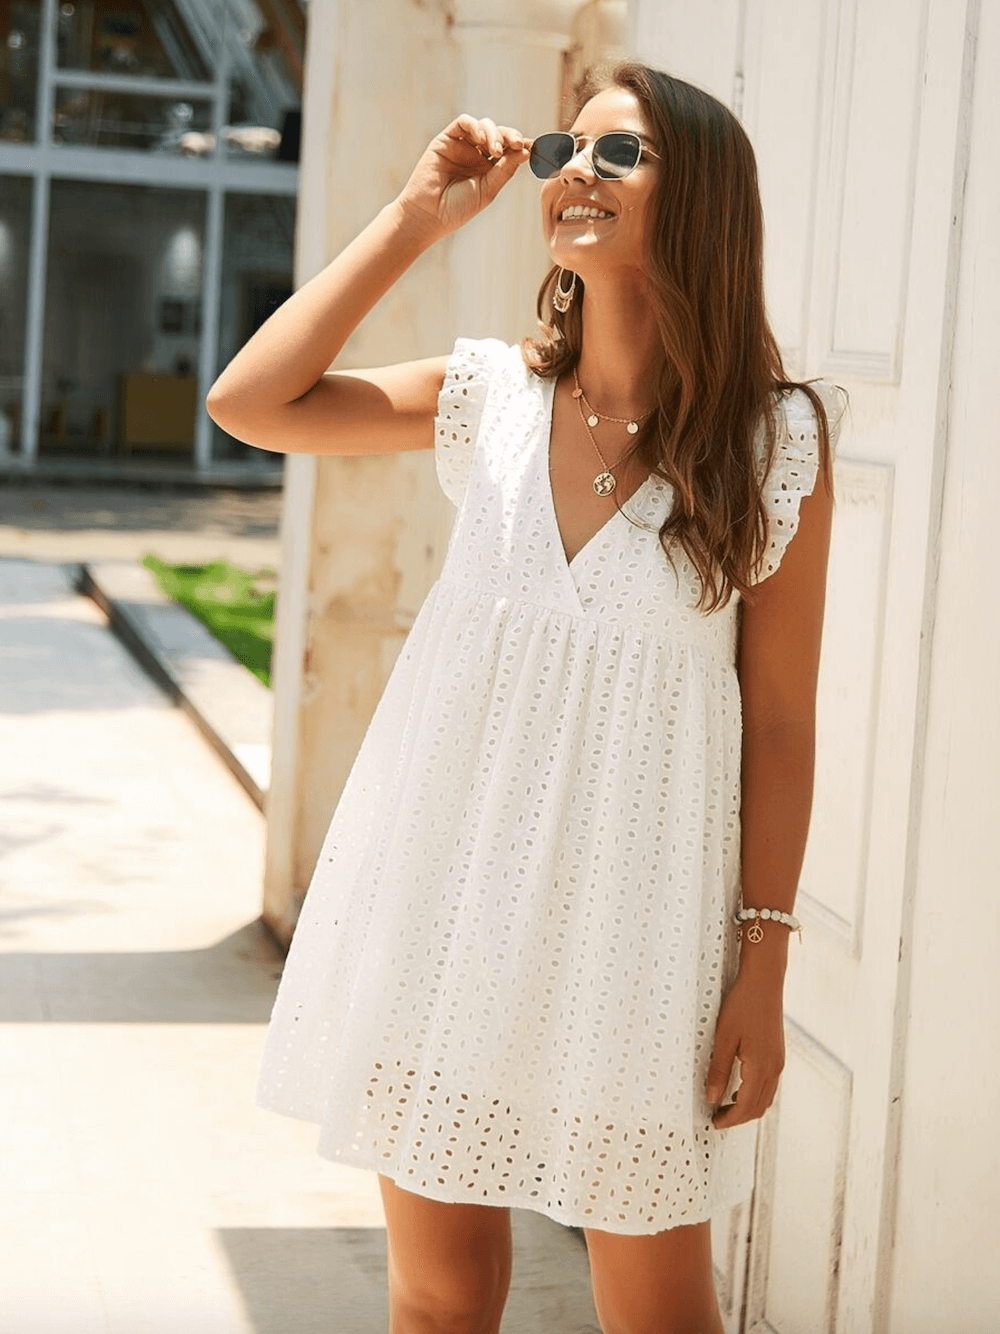 Summer Outfits Sundresses Beach Casual Simple White Embroidery Dress Shein